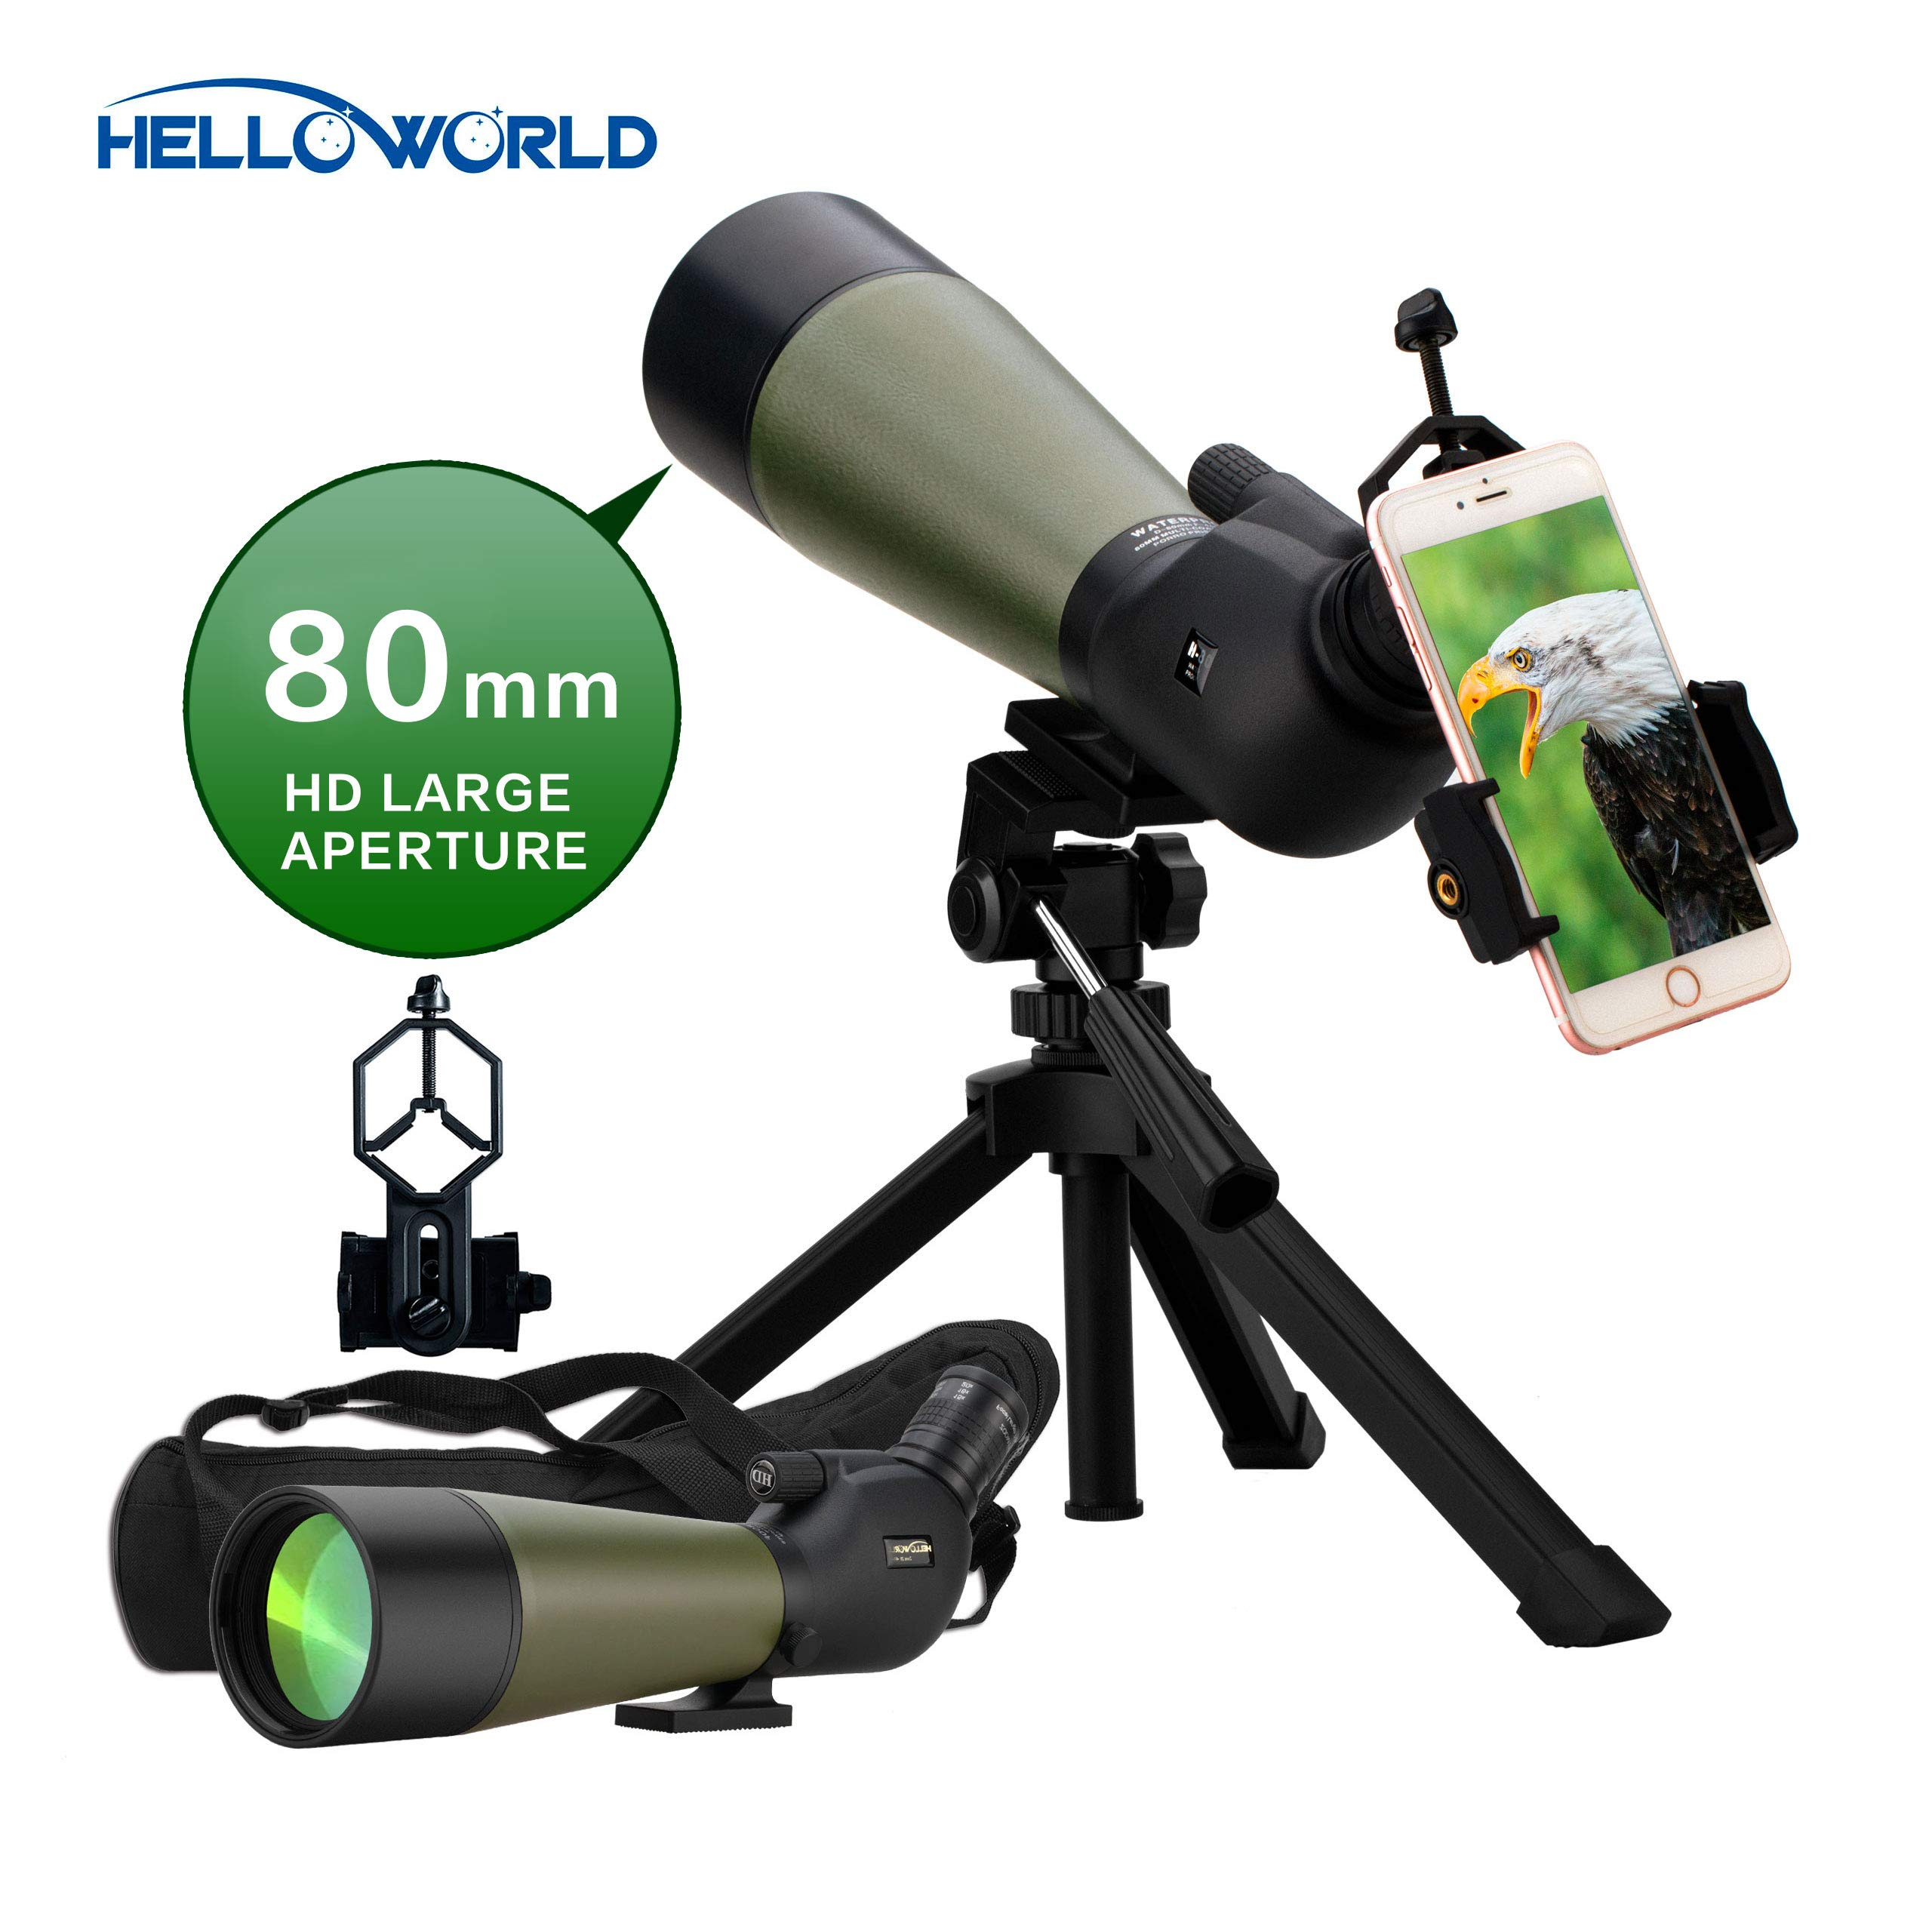 World Optical 20-60X80mm Prism Spotting Scope 100% Waterproof Spotting Scopes with Tripod Phone Adapter Bag-45 Degree Angled 25mm Big Eyepiece Spotting Scopes for Target Shooting Hunting Bird Watching